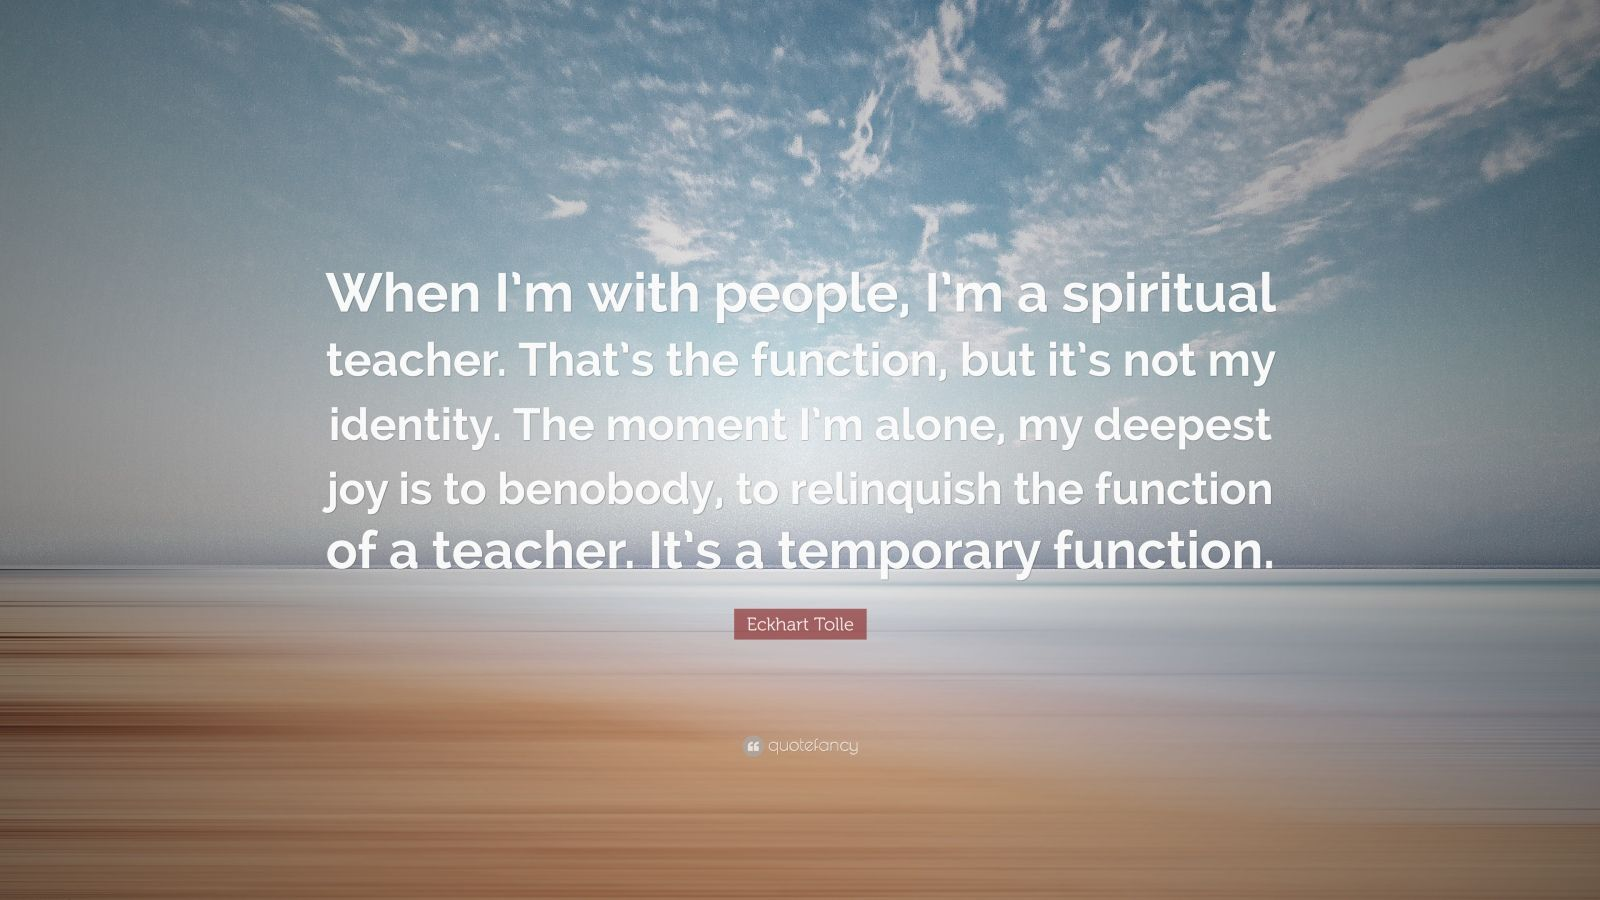 "Eckhart Tolle Quote: ""When I'm with people, I'm a spiritual teacher. That's the function, but it's not my identity. The moment I'm alone, my deepest joy is to benobody, to relinquish the function of a teacher. It's a temporary function."""